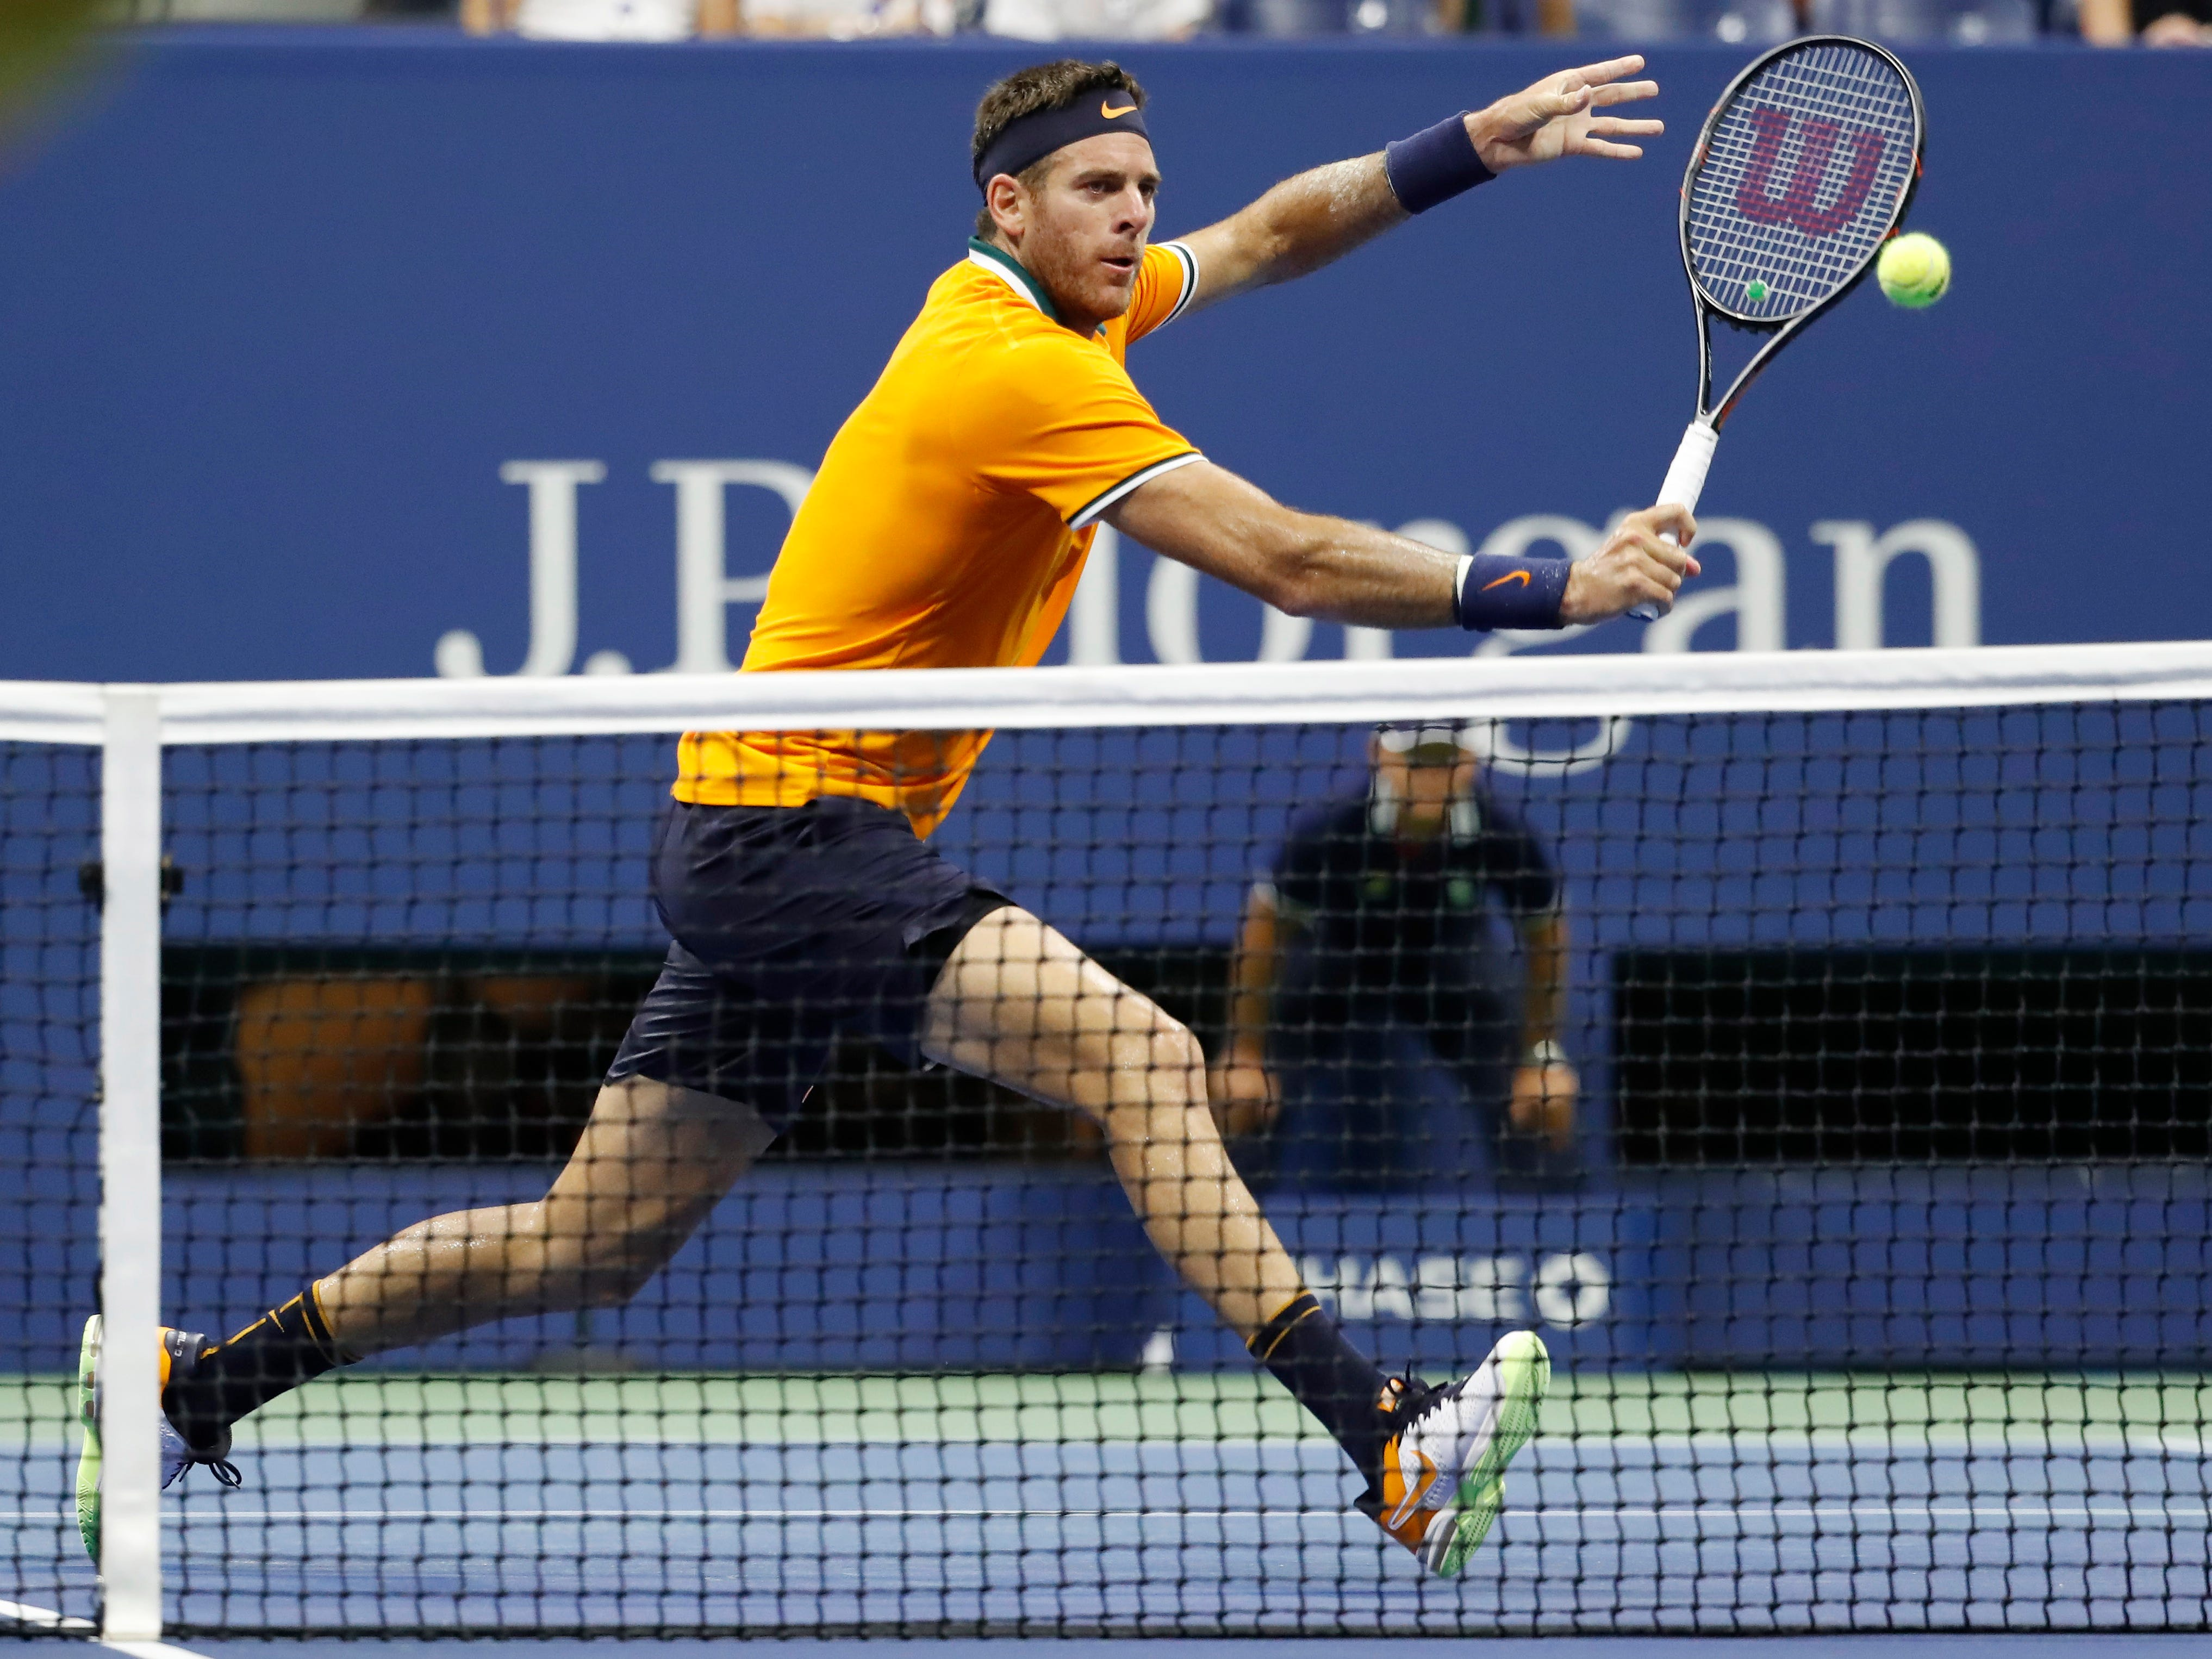 Juan Martin del Potro runs down a backhand return against Borna Coric.